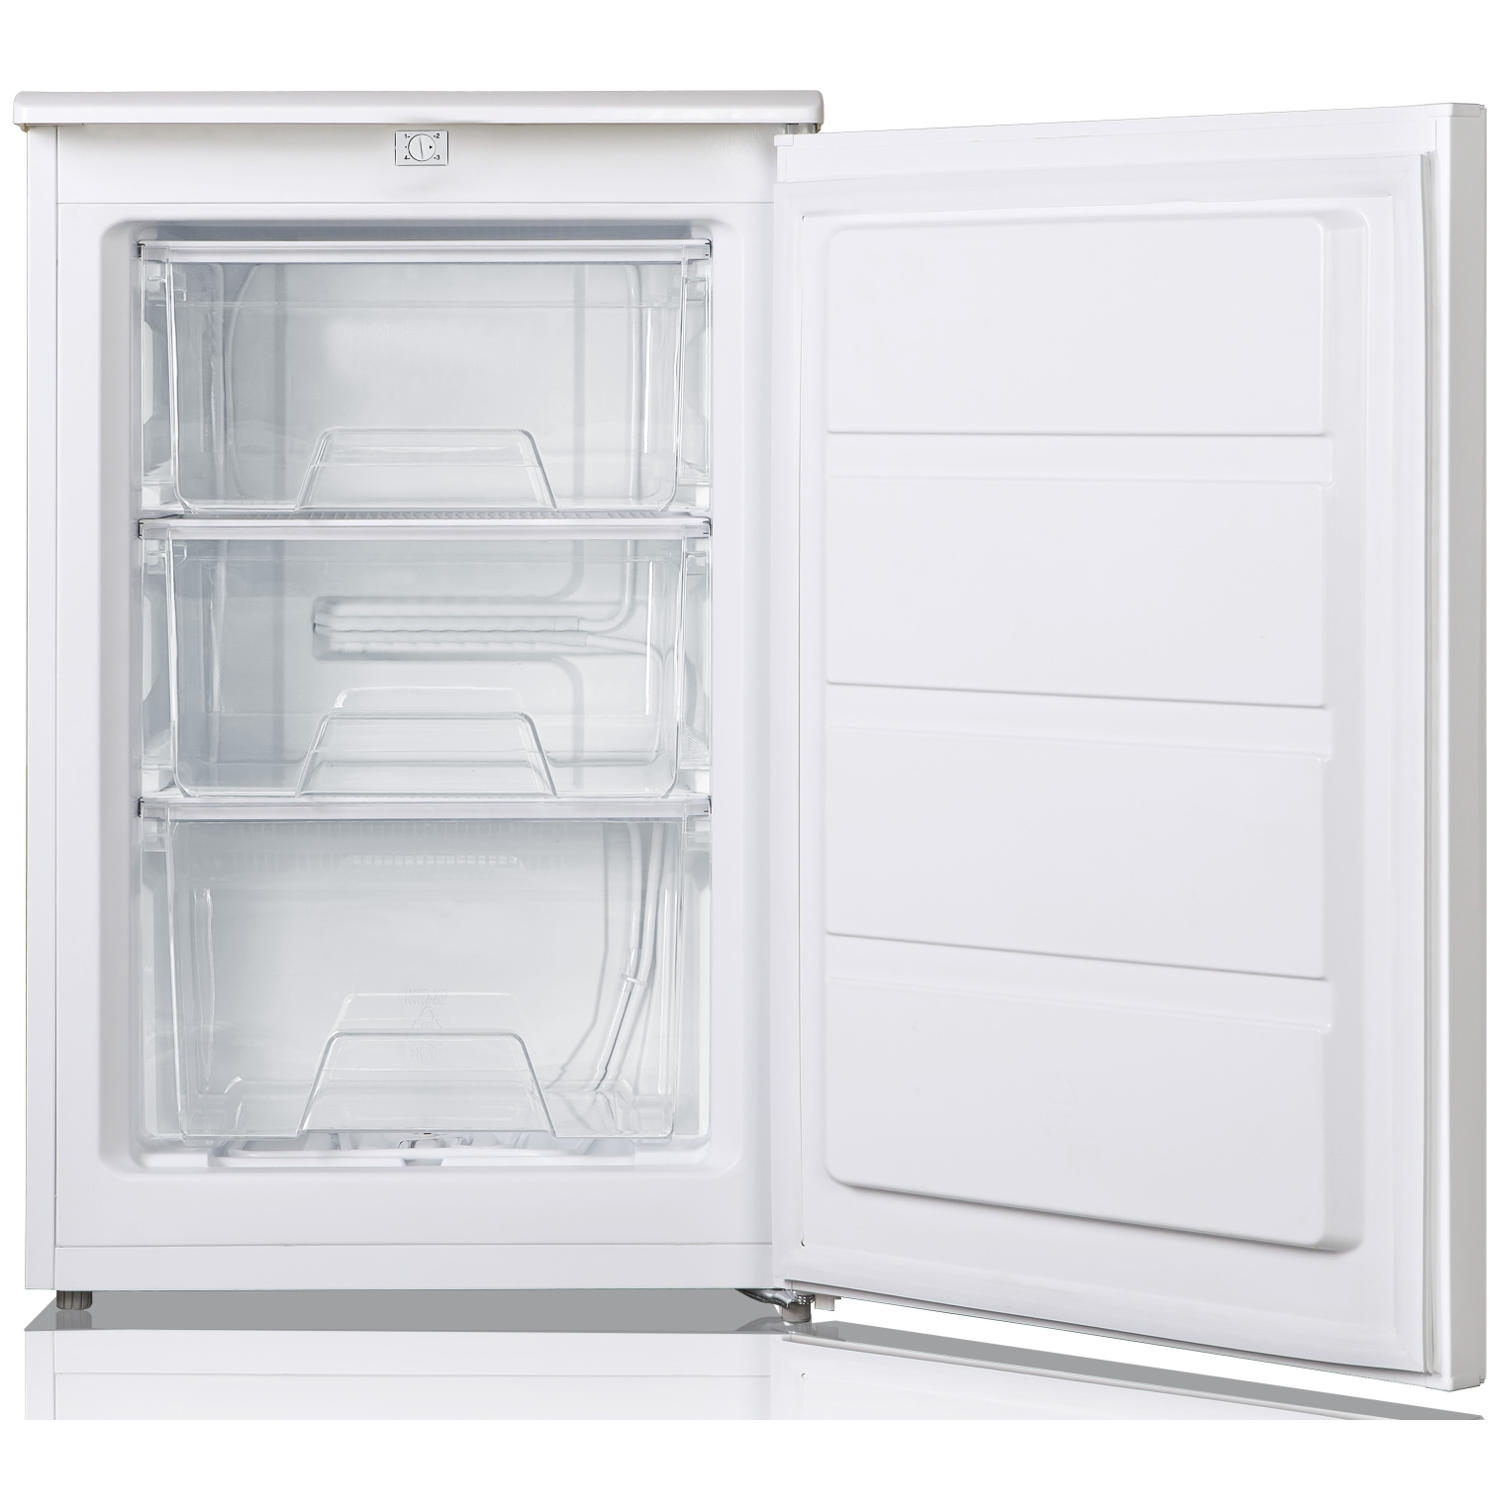 Lec 55cm Undercounter Freezer - White - A+ Rated - 1